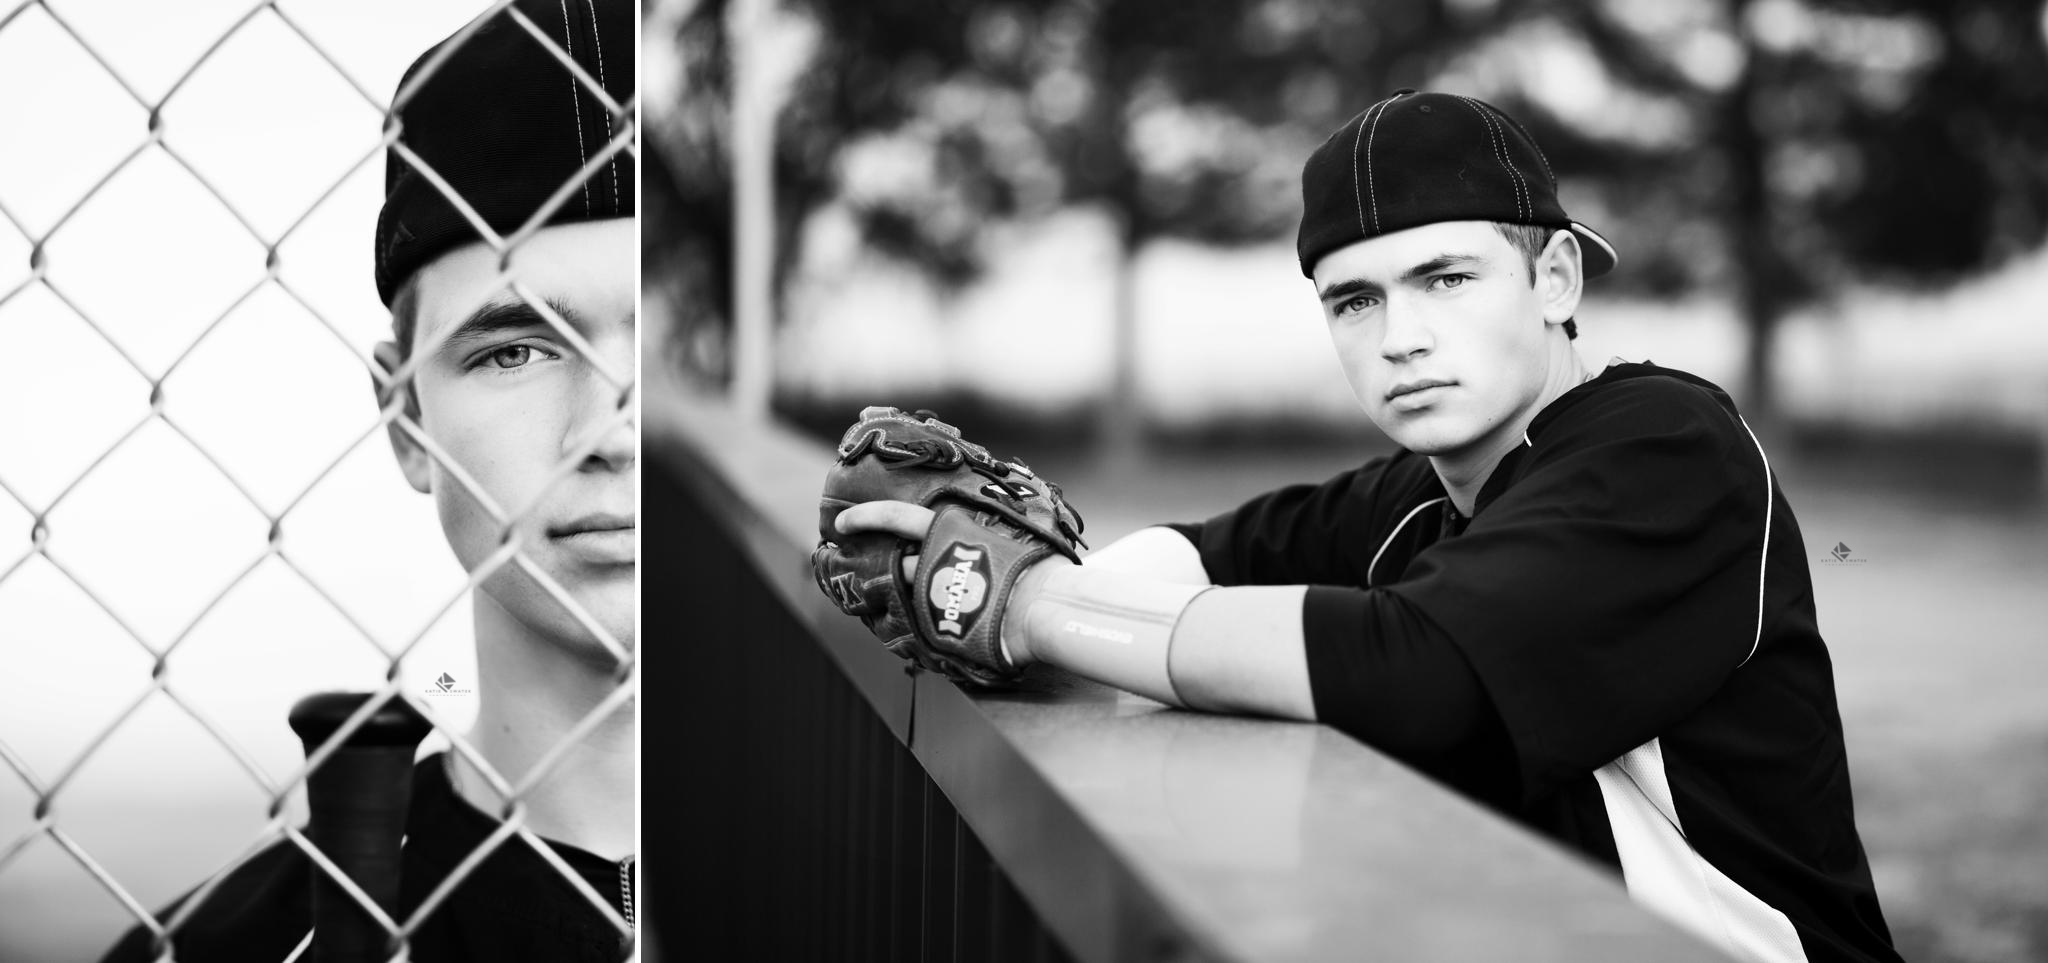 blonde senior boy in baseball jersey on the ball field image in black and white